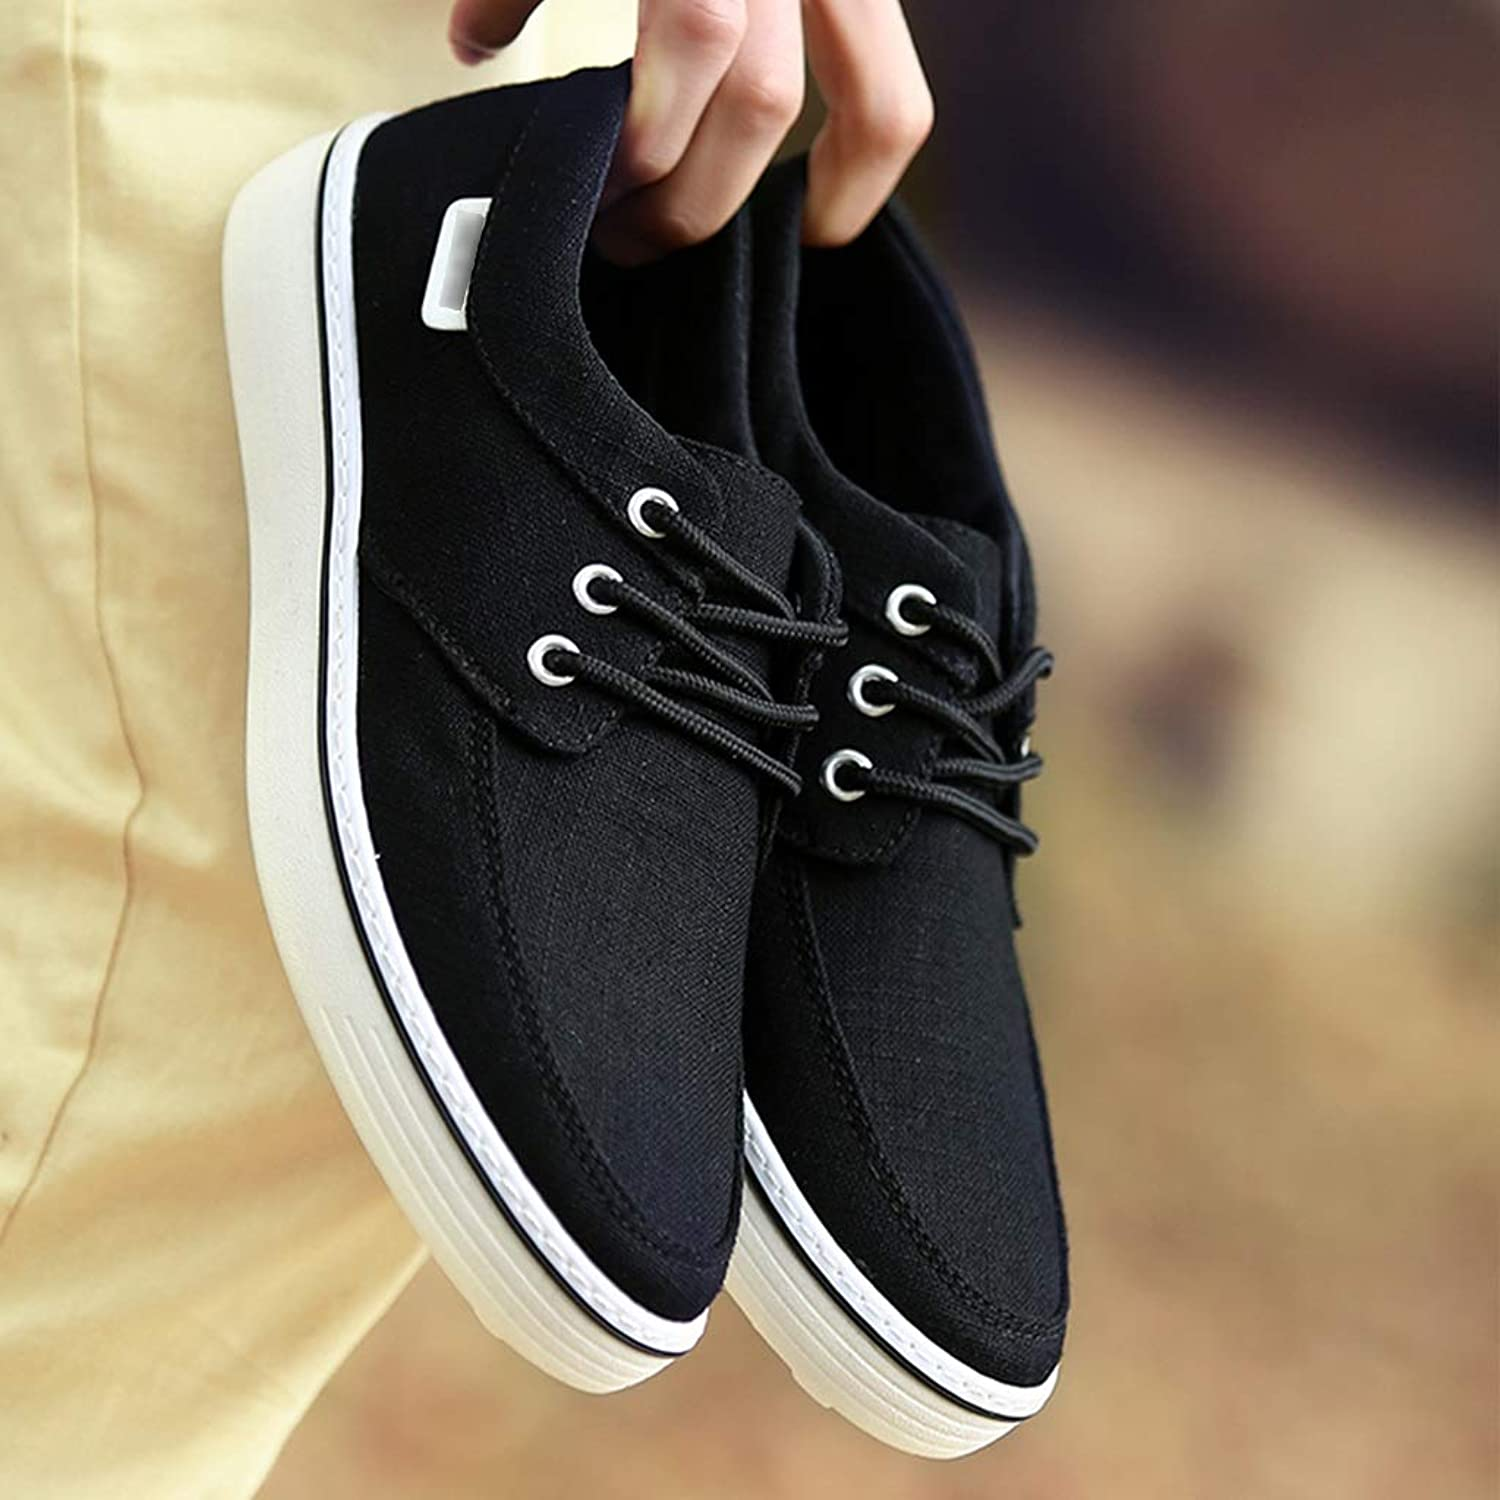 WangKuanHome Summer breathable canvas shoes trend board shoes men's wild casual canvas shoes men's shoes (color   Black, Size   46)